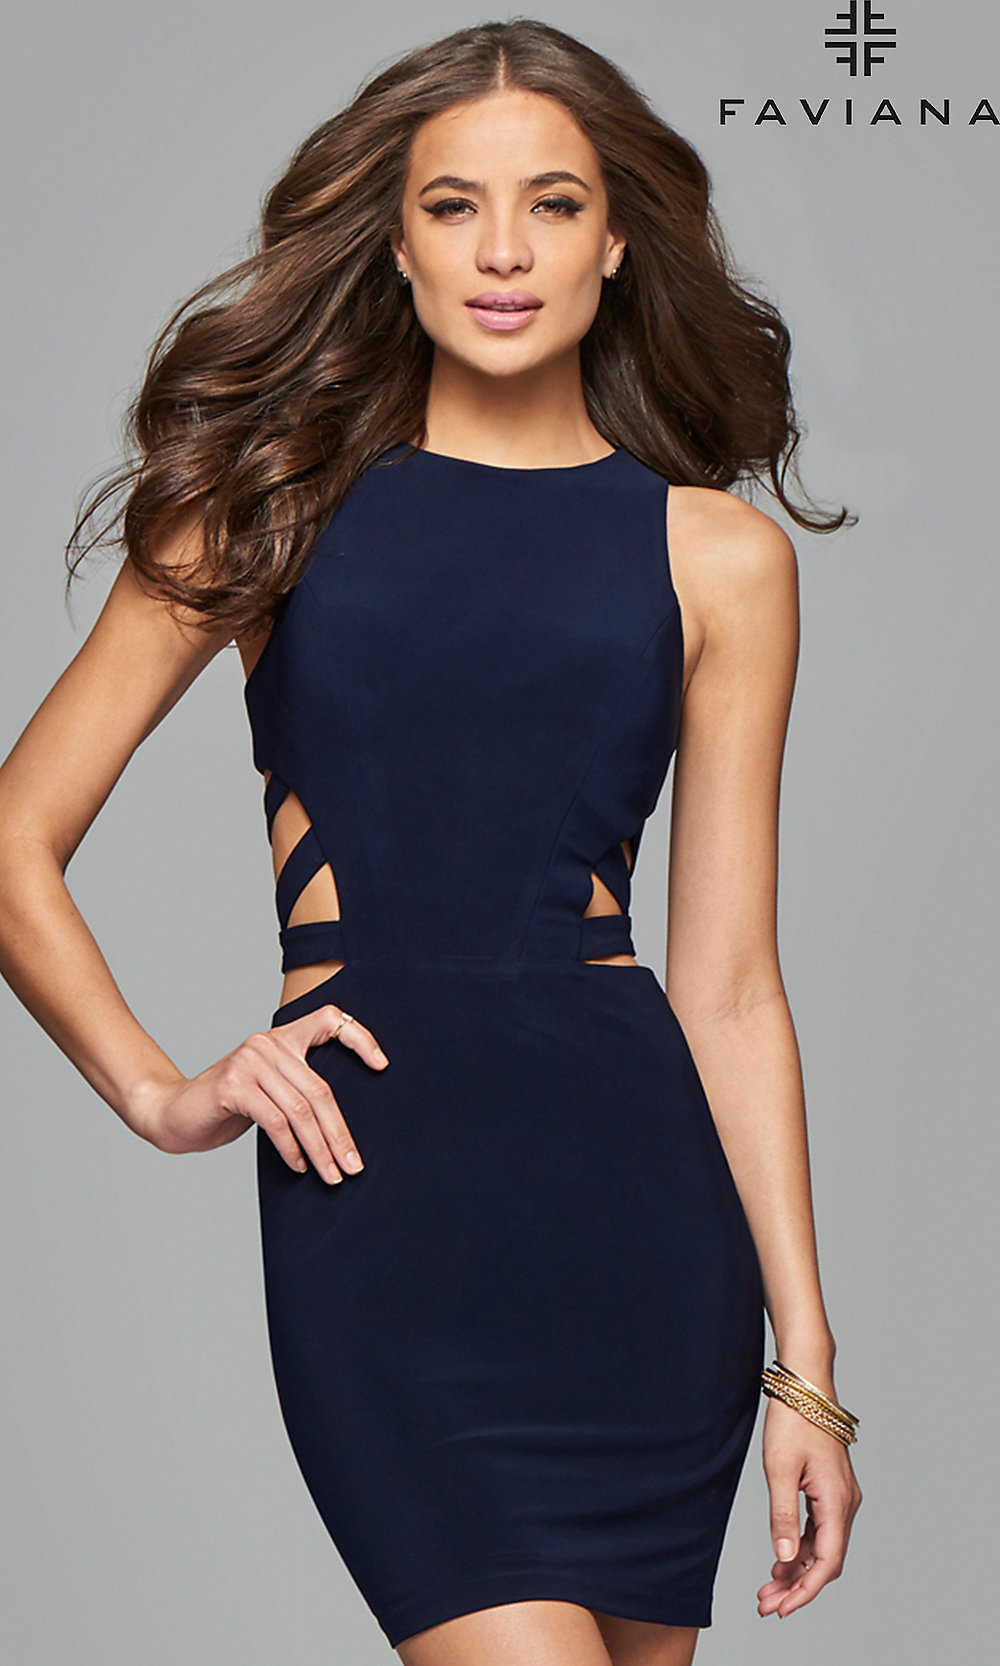 Faviana Short Dress with Cutouts - PromGirl